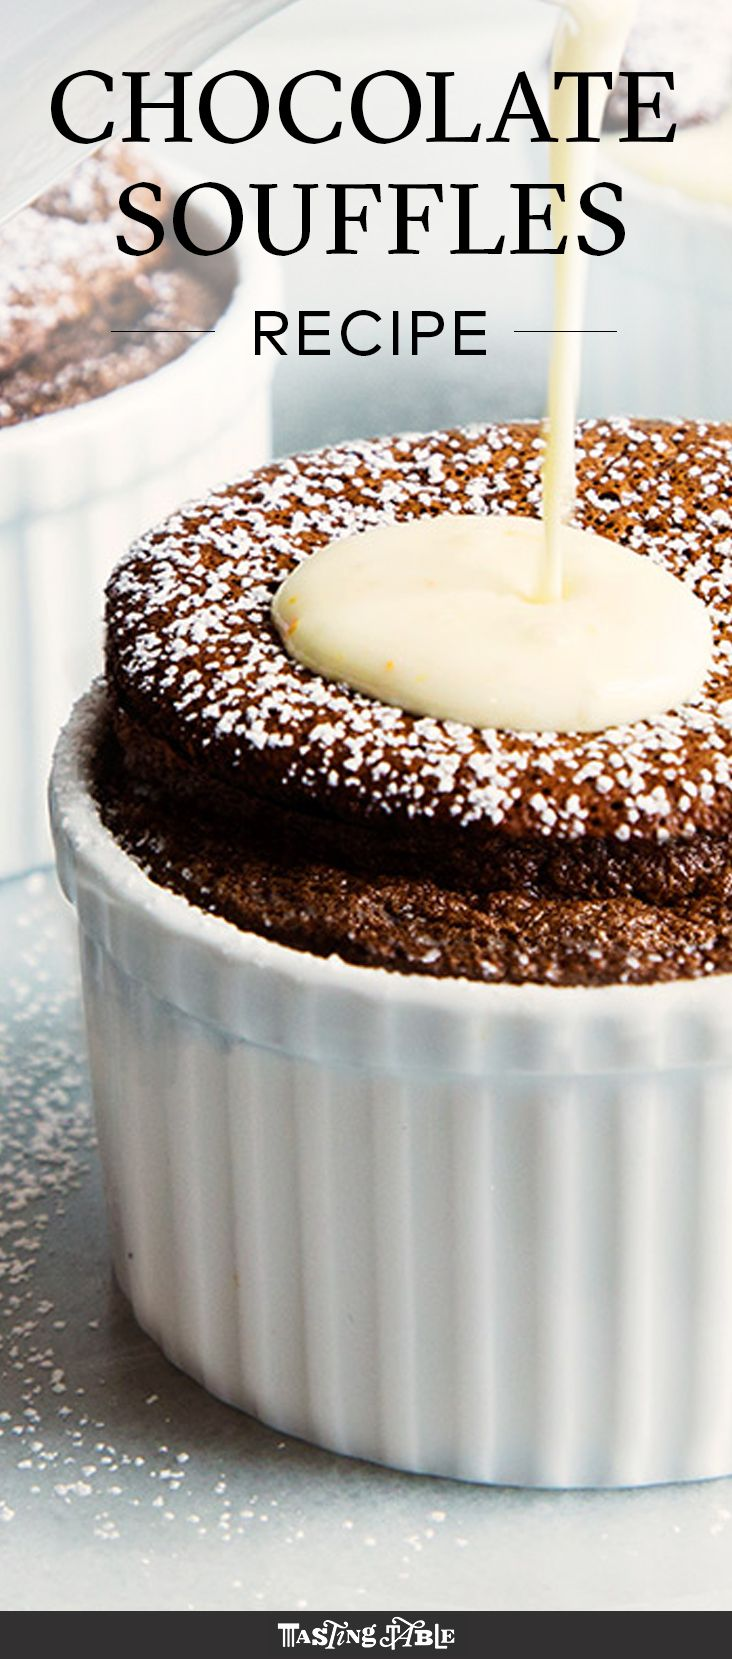 A bright orange sauce covers this rich chocolate soufflé from Jacques Pépin.